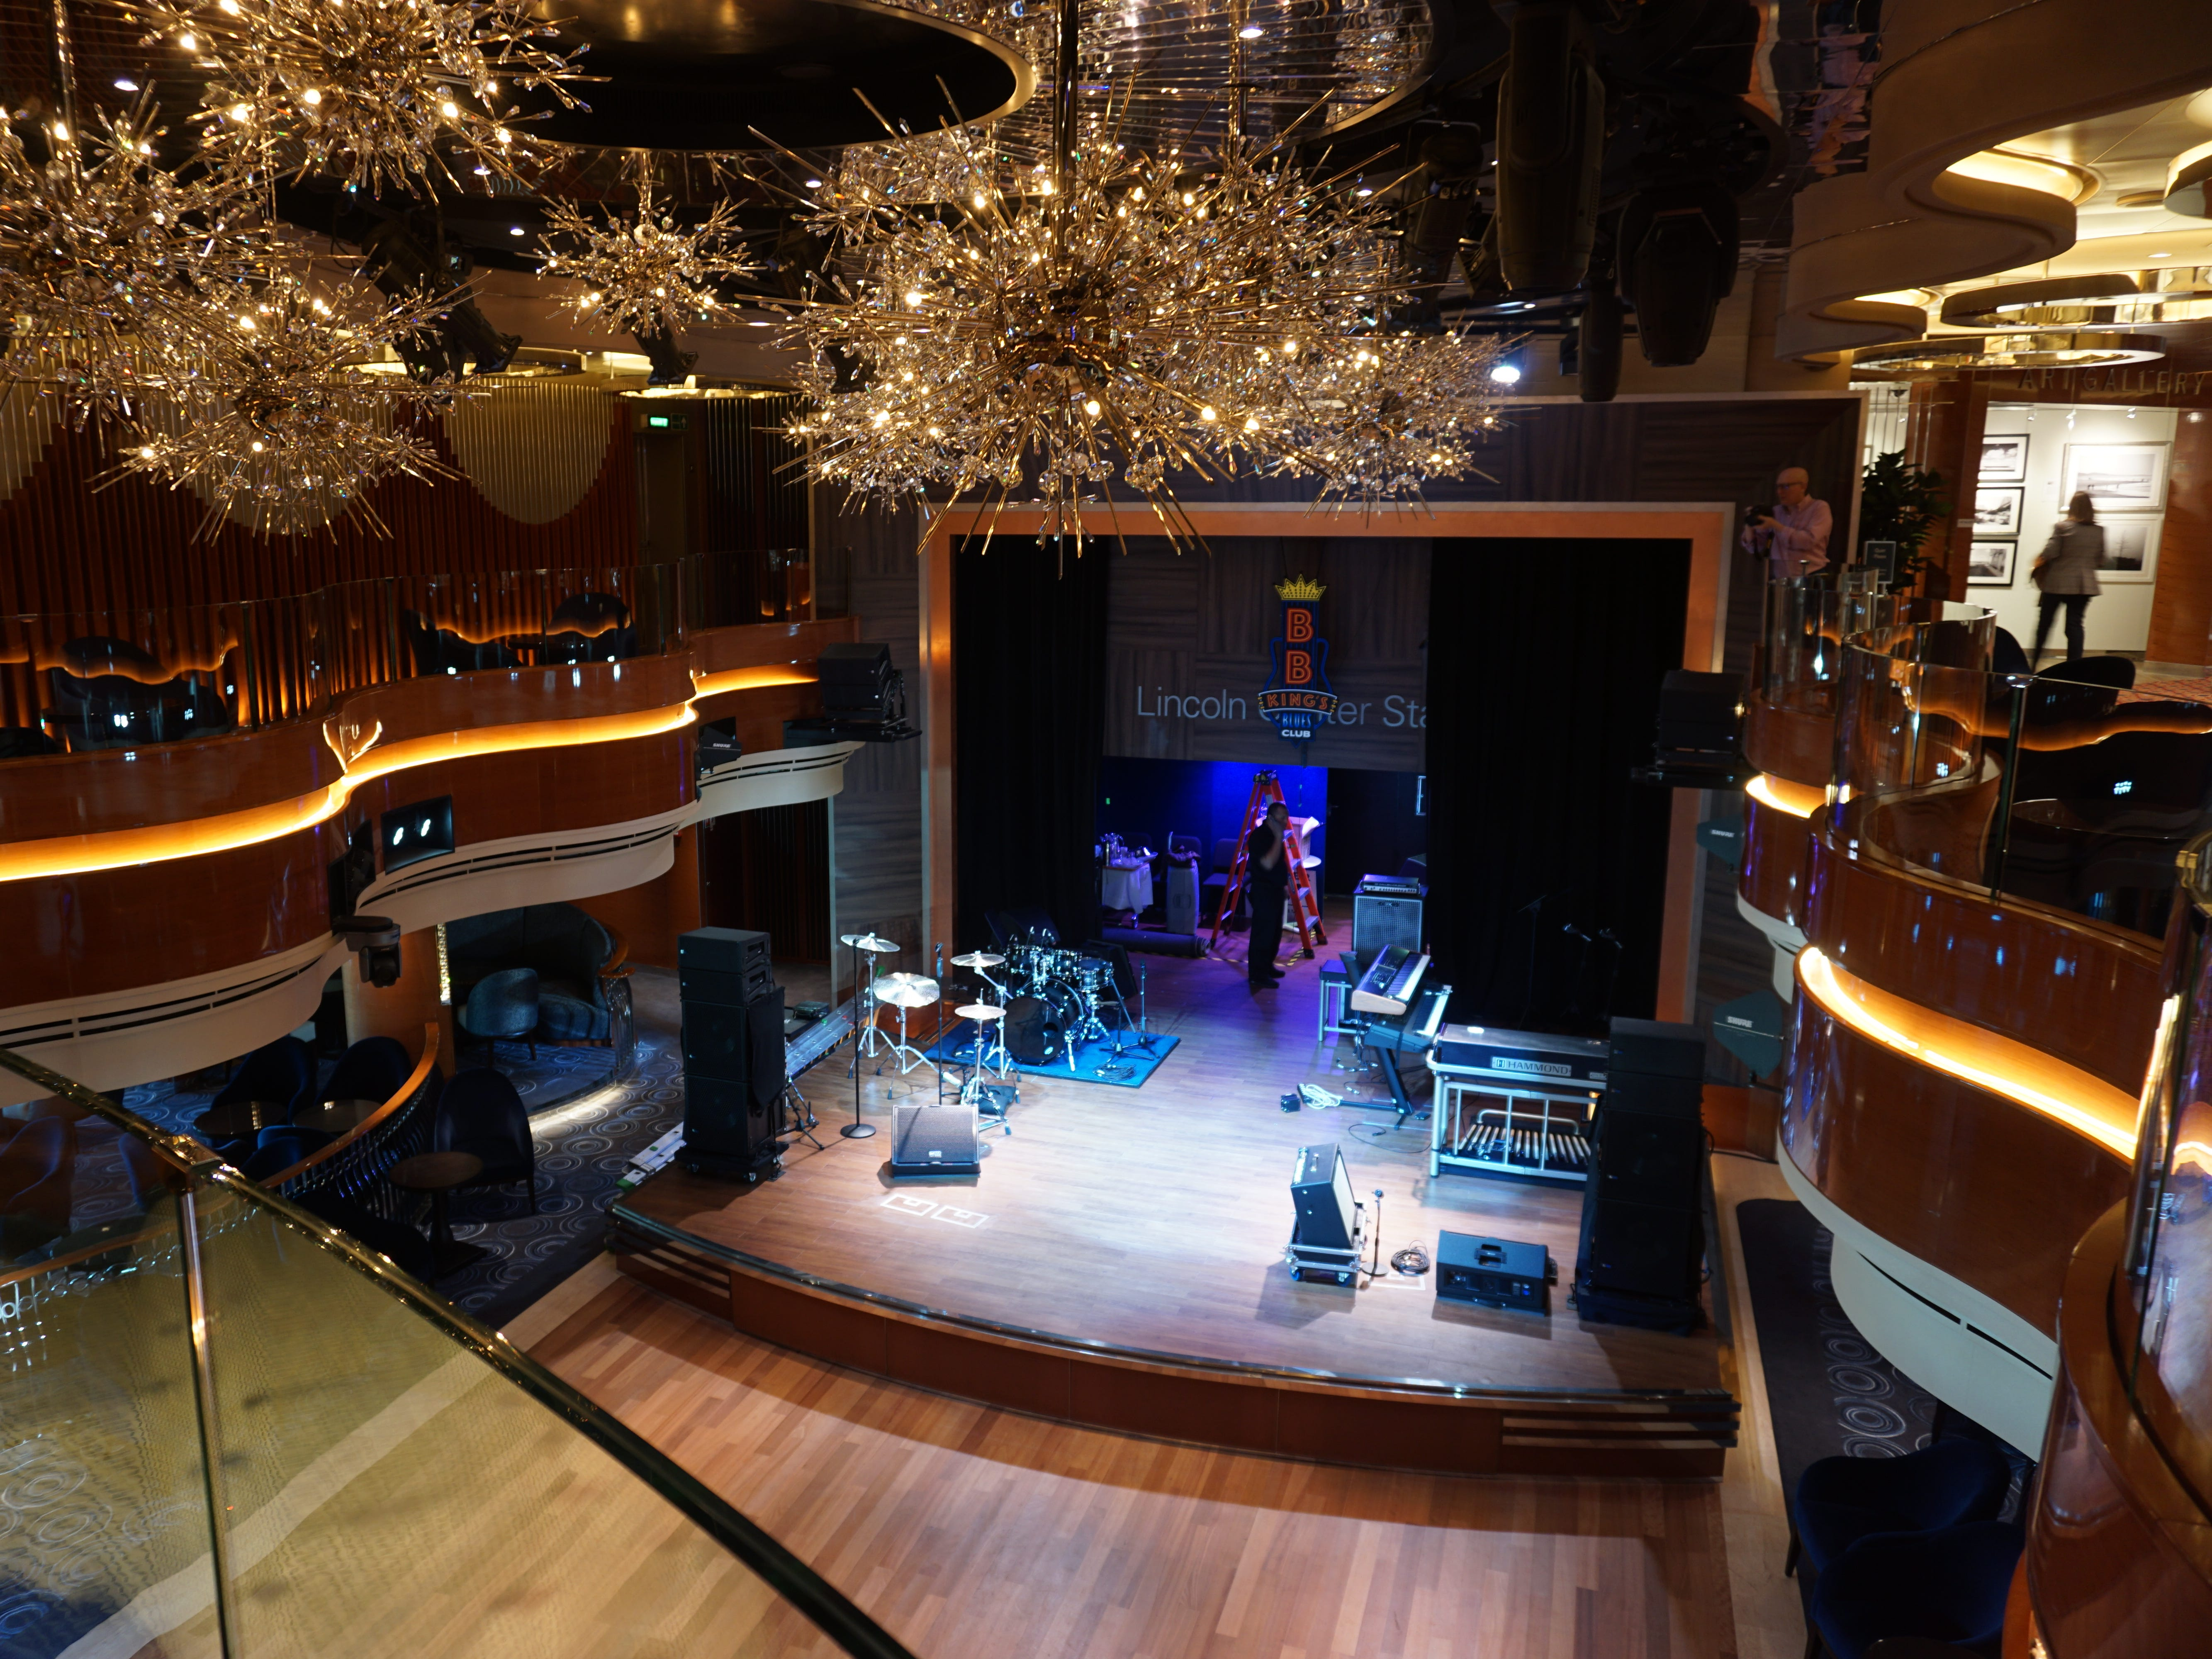 In the midst of the shopping area on Deck 3 is the upper level of the dual-purpose Lincoln Center Stage/BB King's entertainment venue.